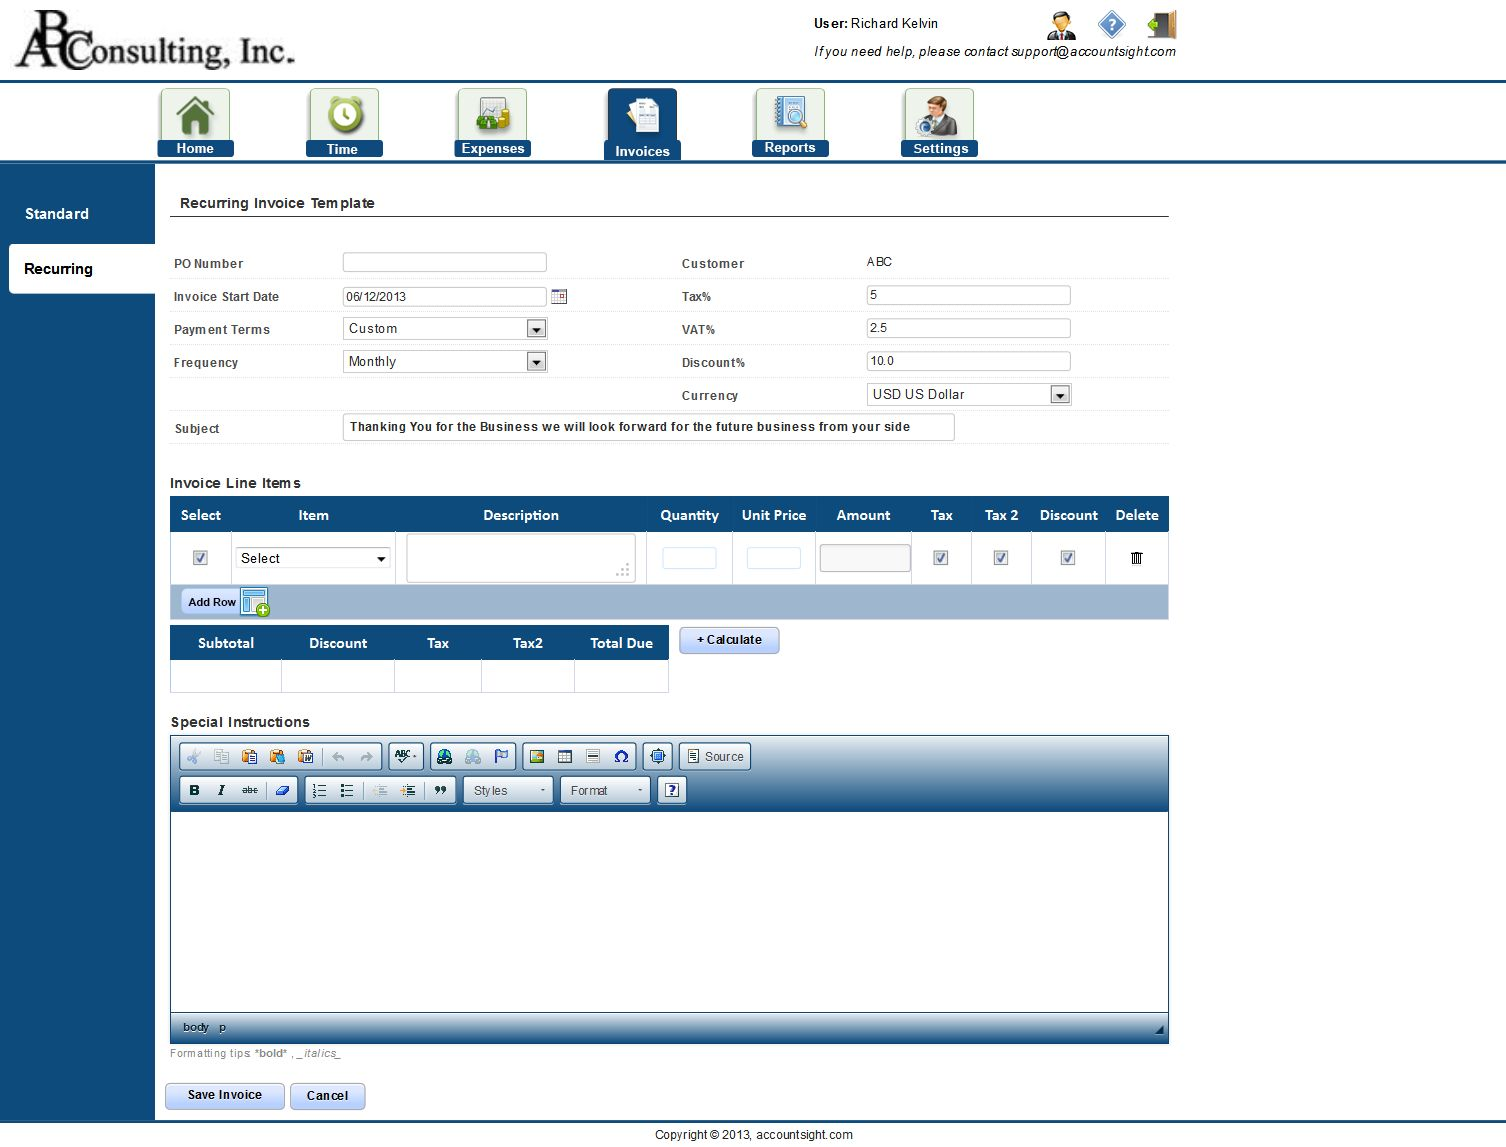 AccountSight Online Invoice Tracking Software Recurring Invoices - Invoice creation software free